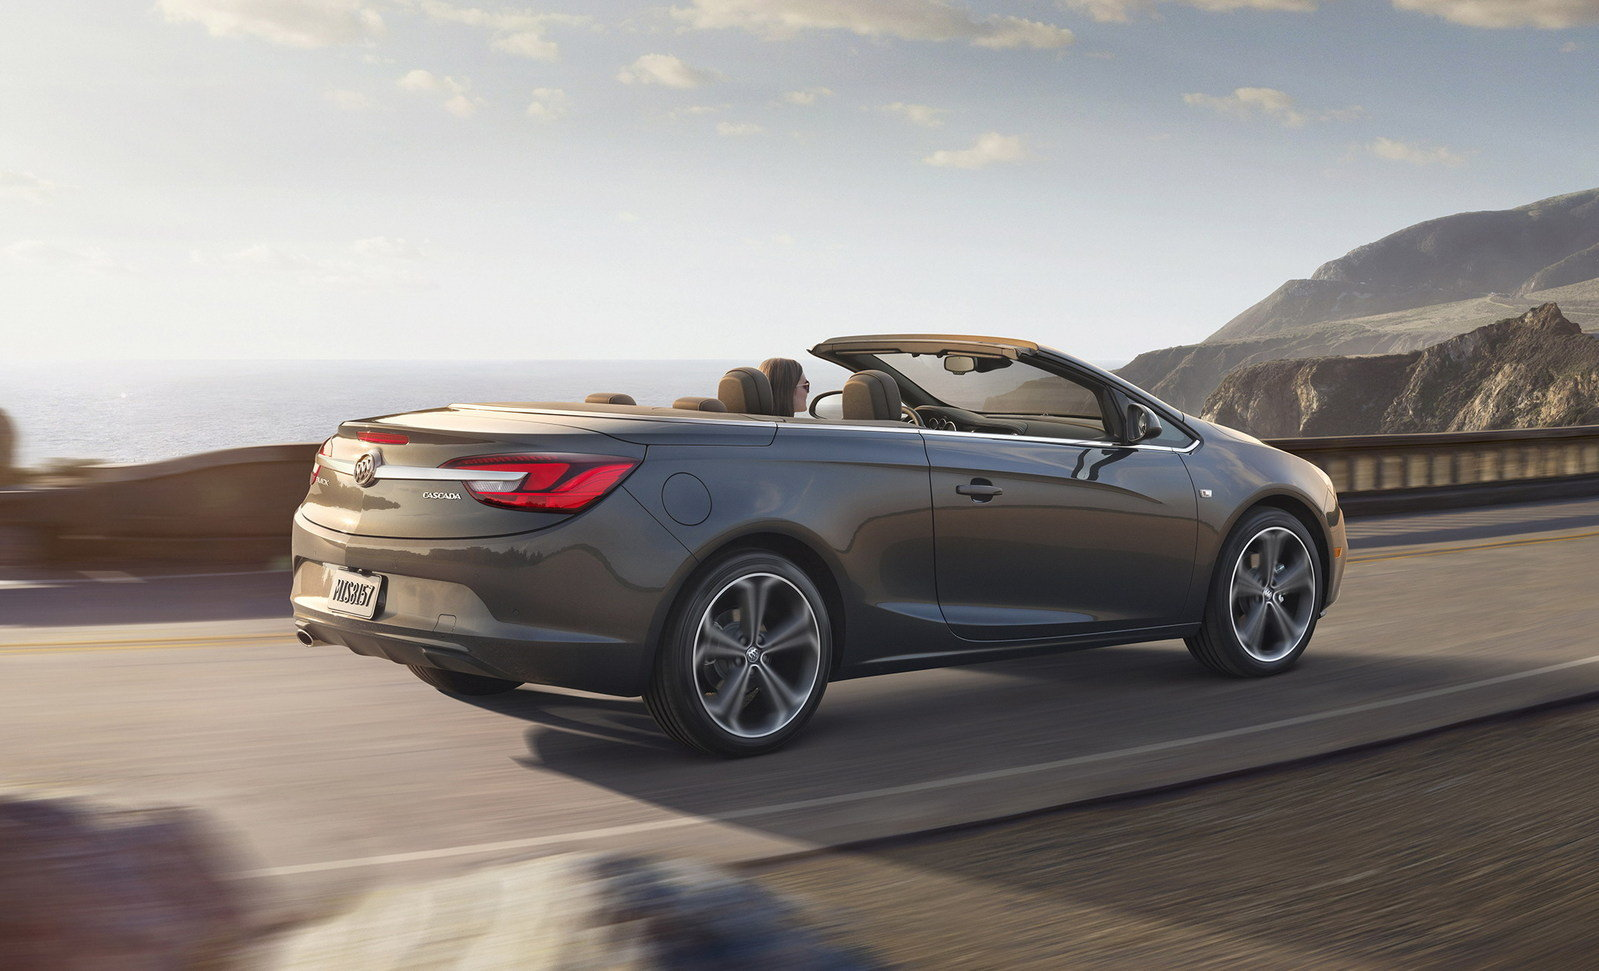 2017 buick cascada picture 609876 car review top speed. Black Bedroom Furniture Sets. Home Design Ideas